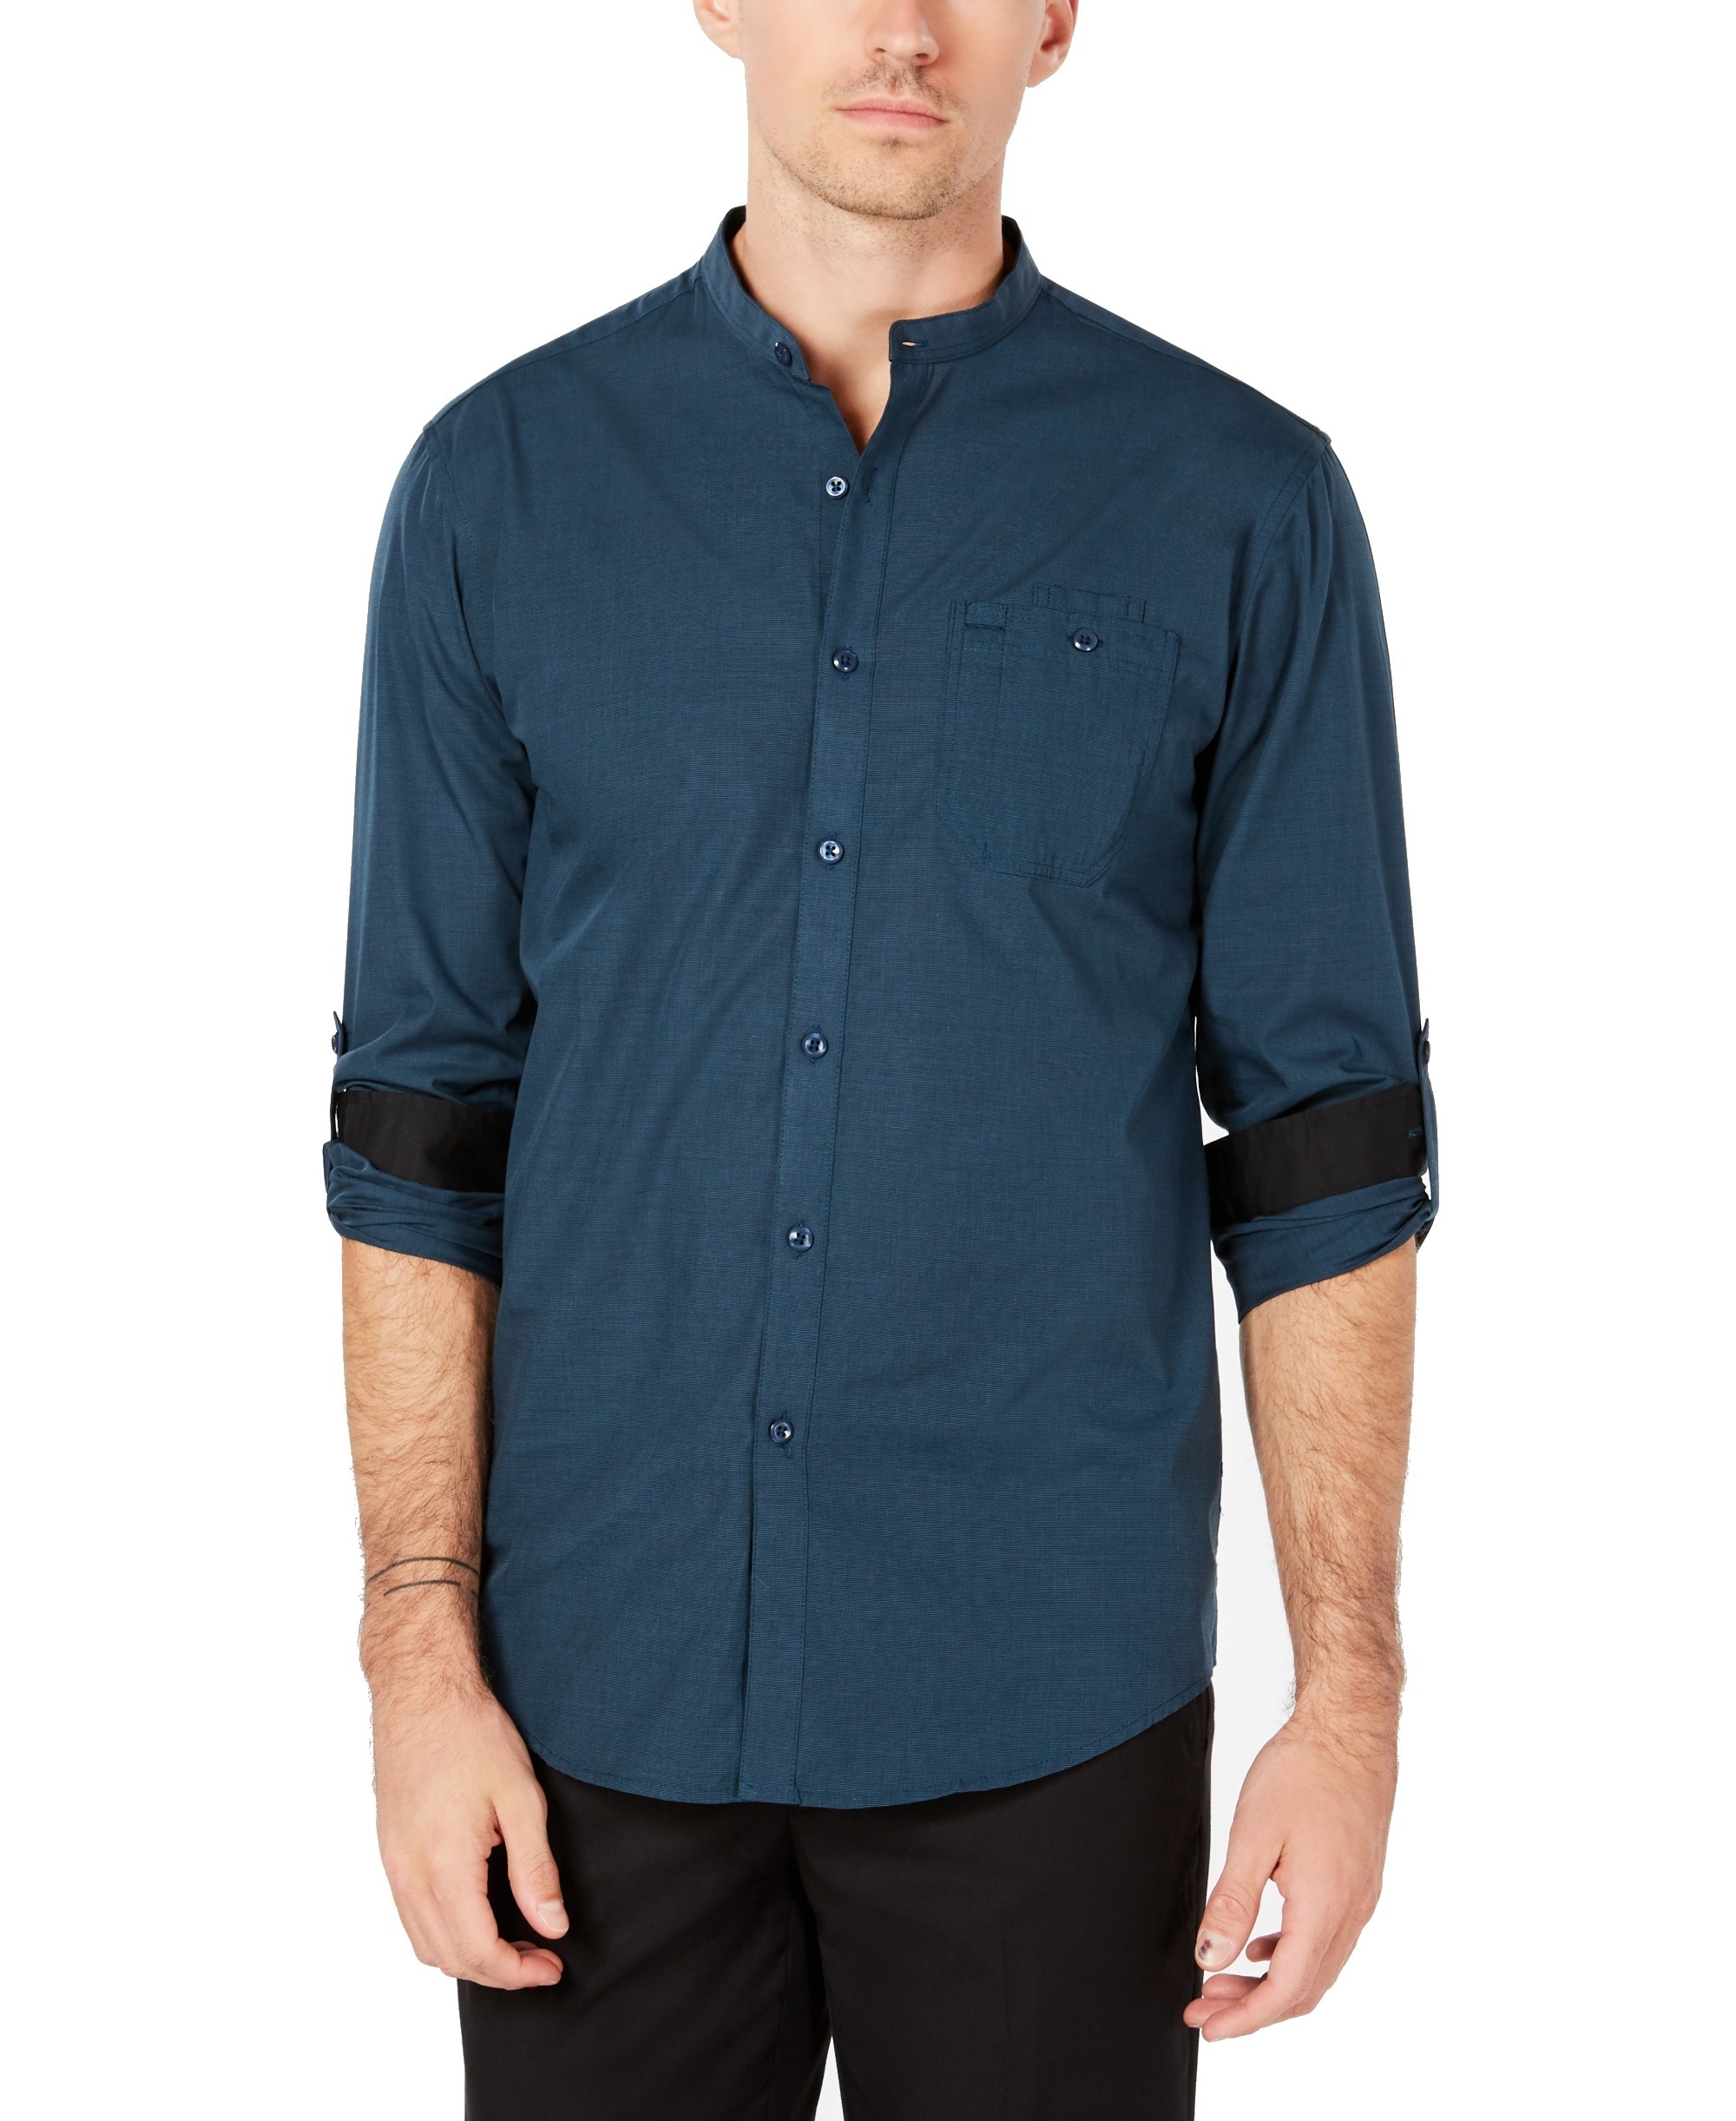 INC-NEW-Peacock-Green-Mens-Size-XS-Striped-Roll-Tab-Banded-Collar-Shirt